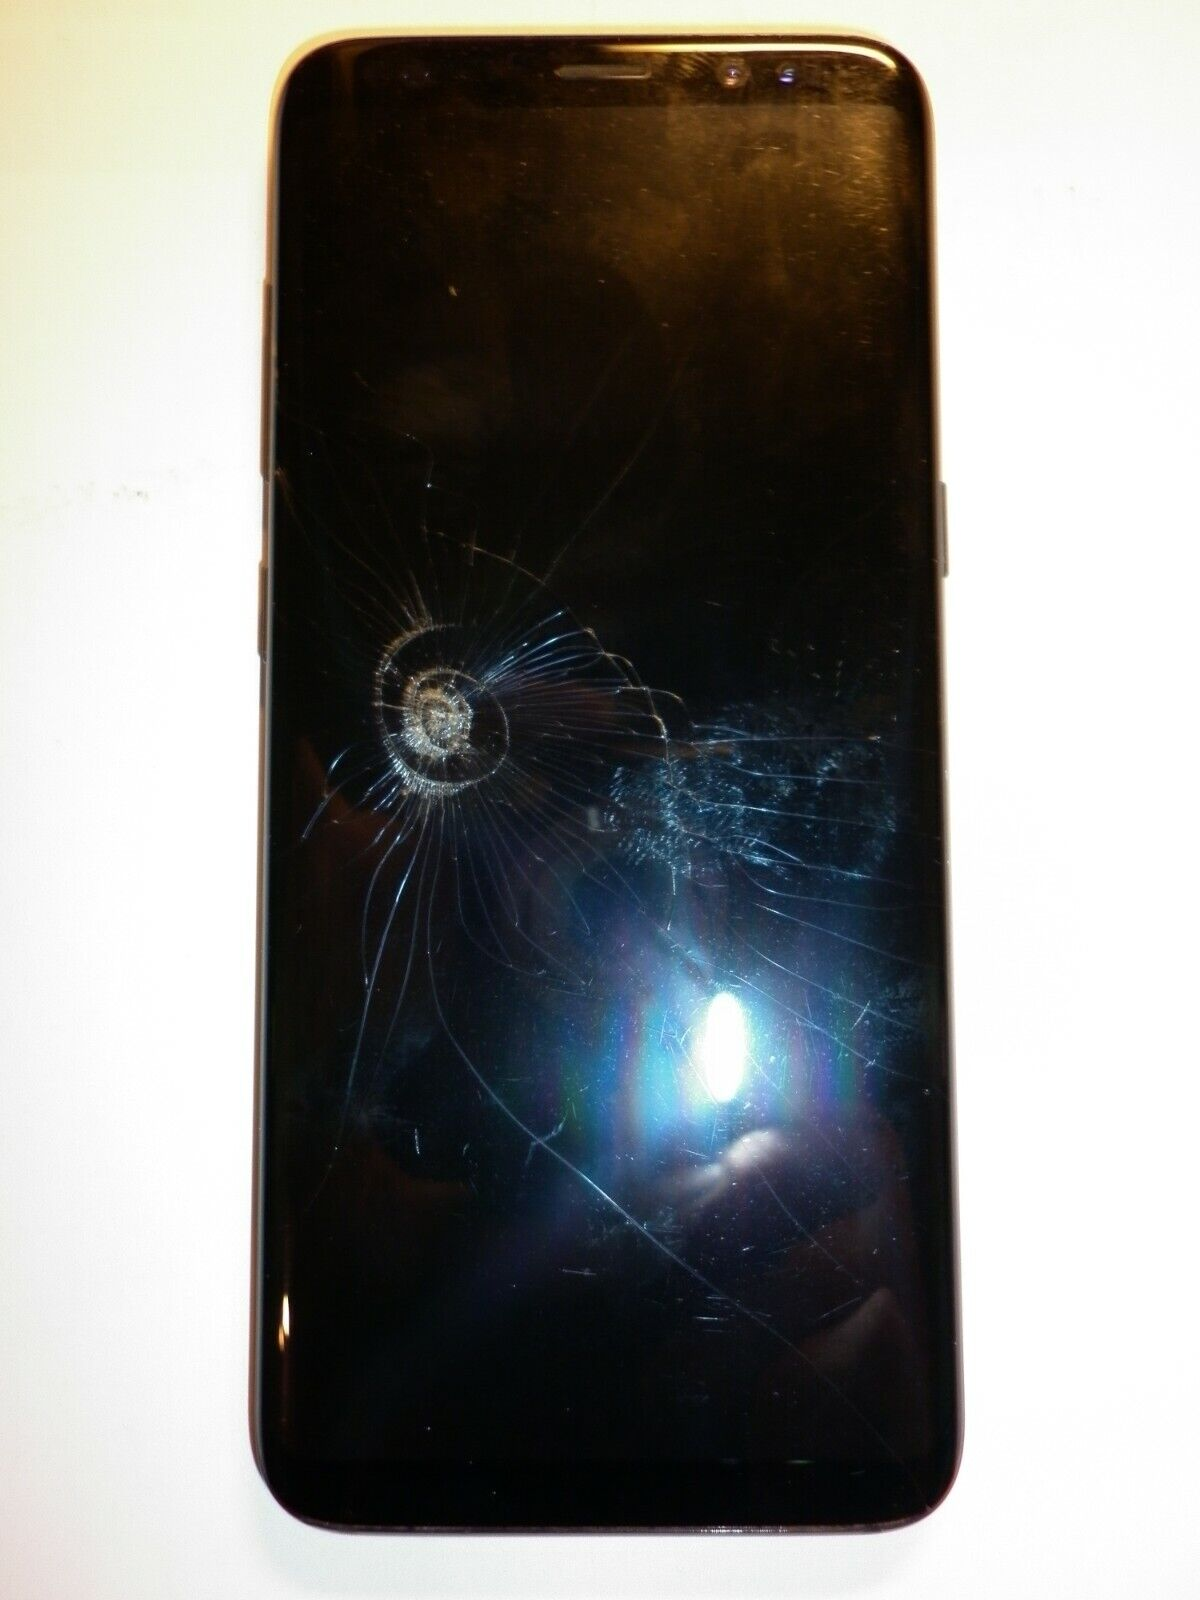 Android Phone - SAMSUNG GALAXY S8 64GB SMART PHONE CRACKED SCREEN